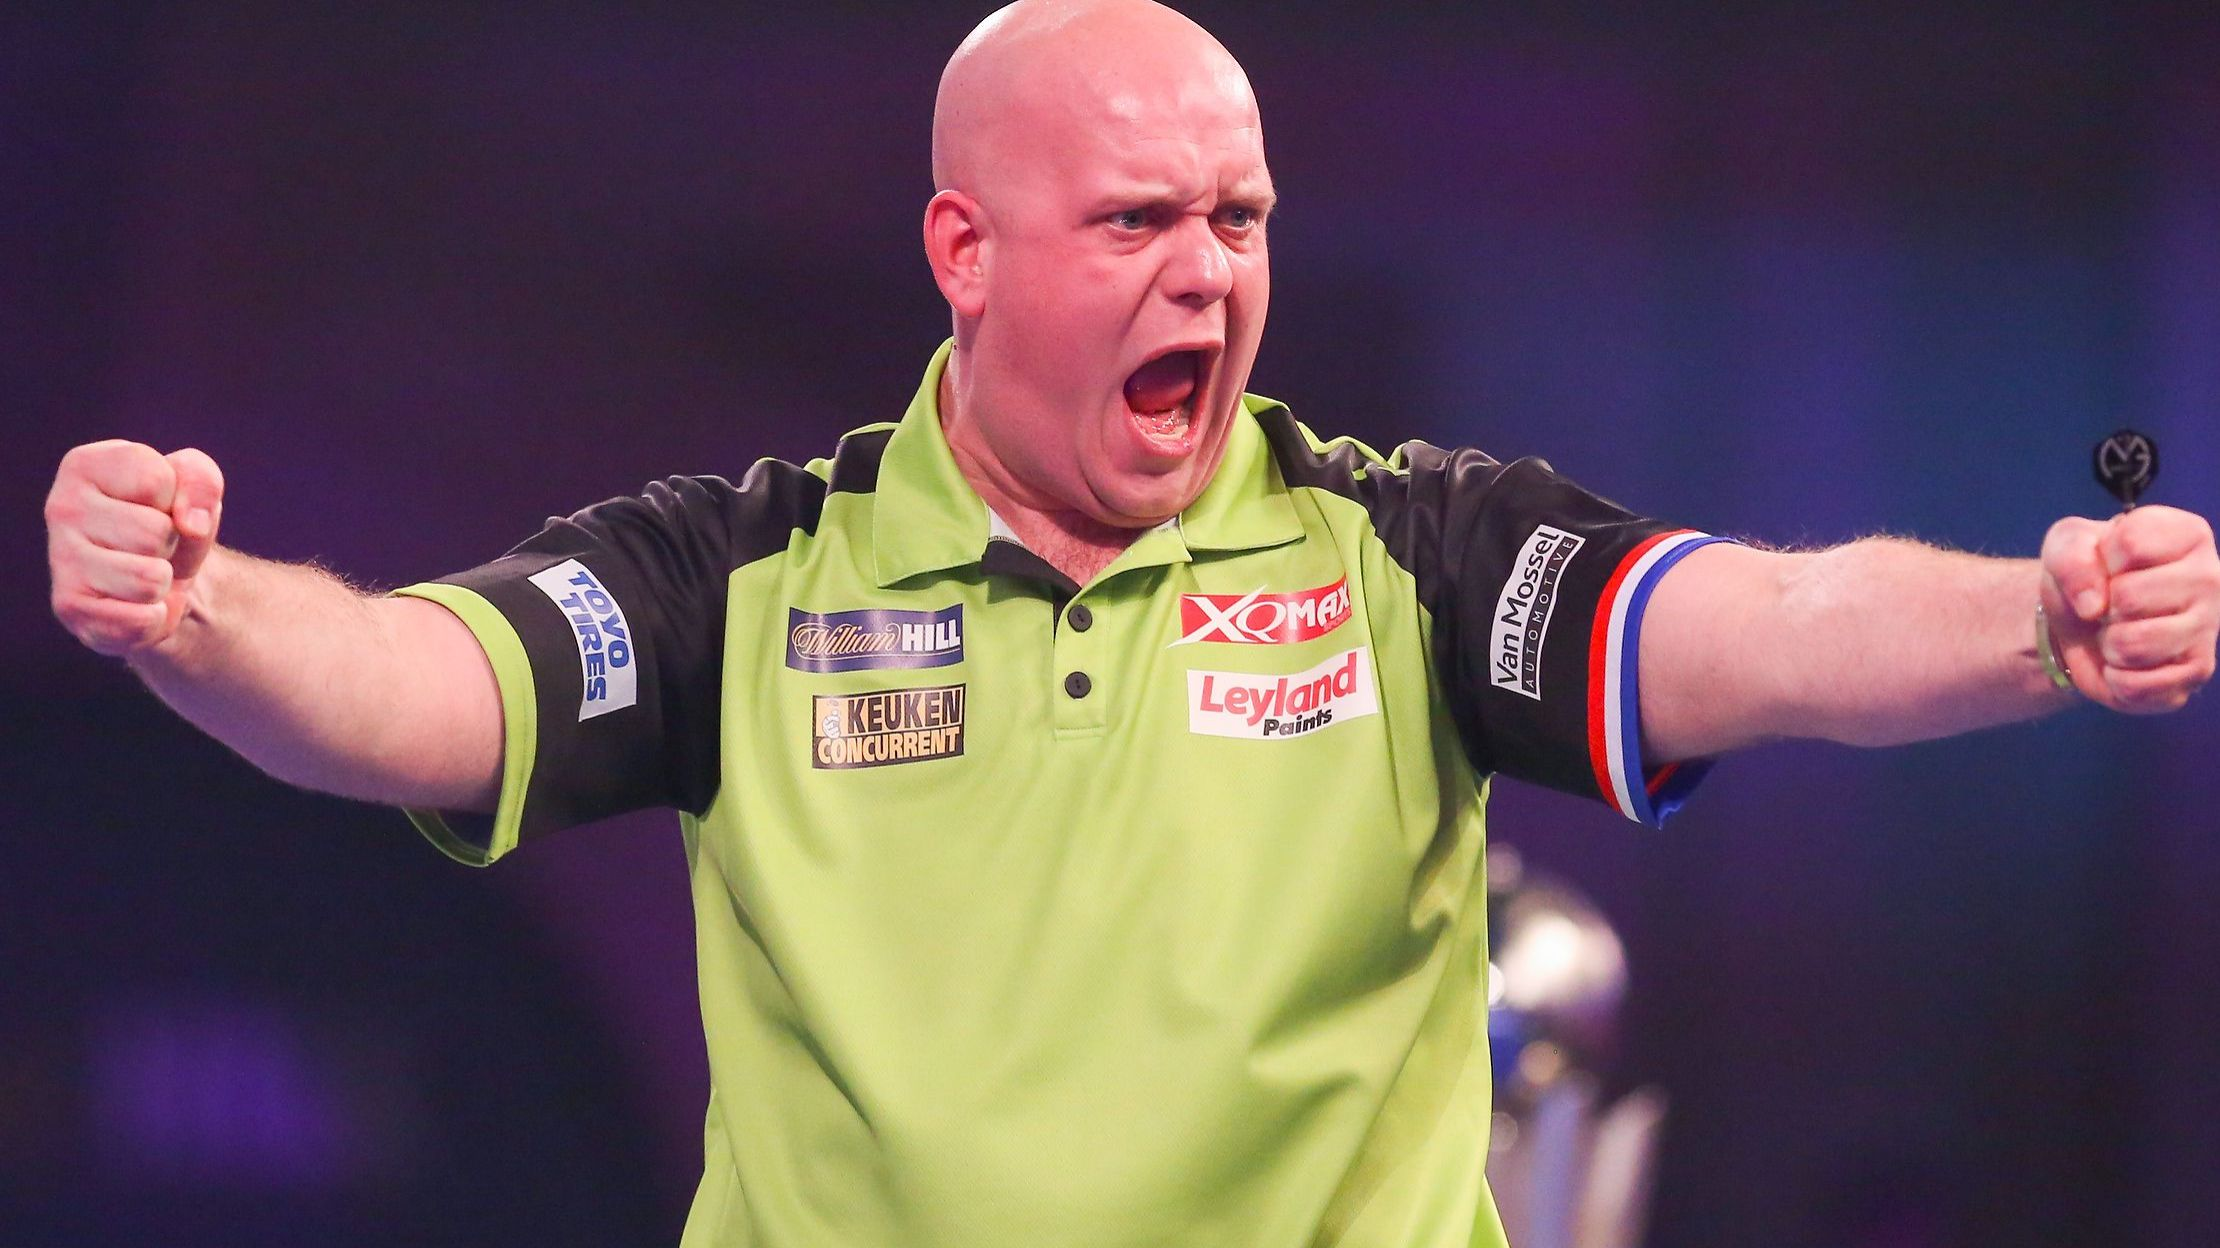 Pdc Champions League Of Darts Final As It Happened Bbc Sport